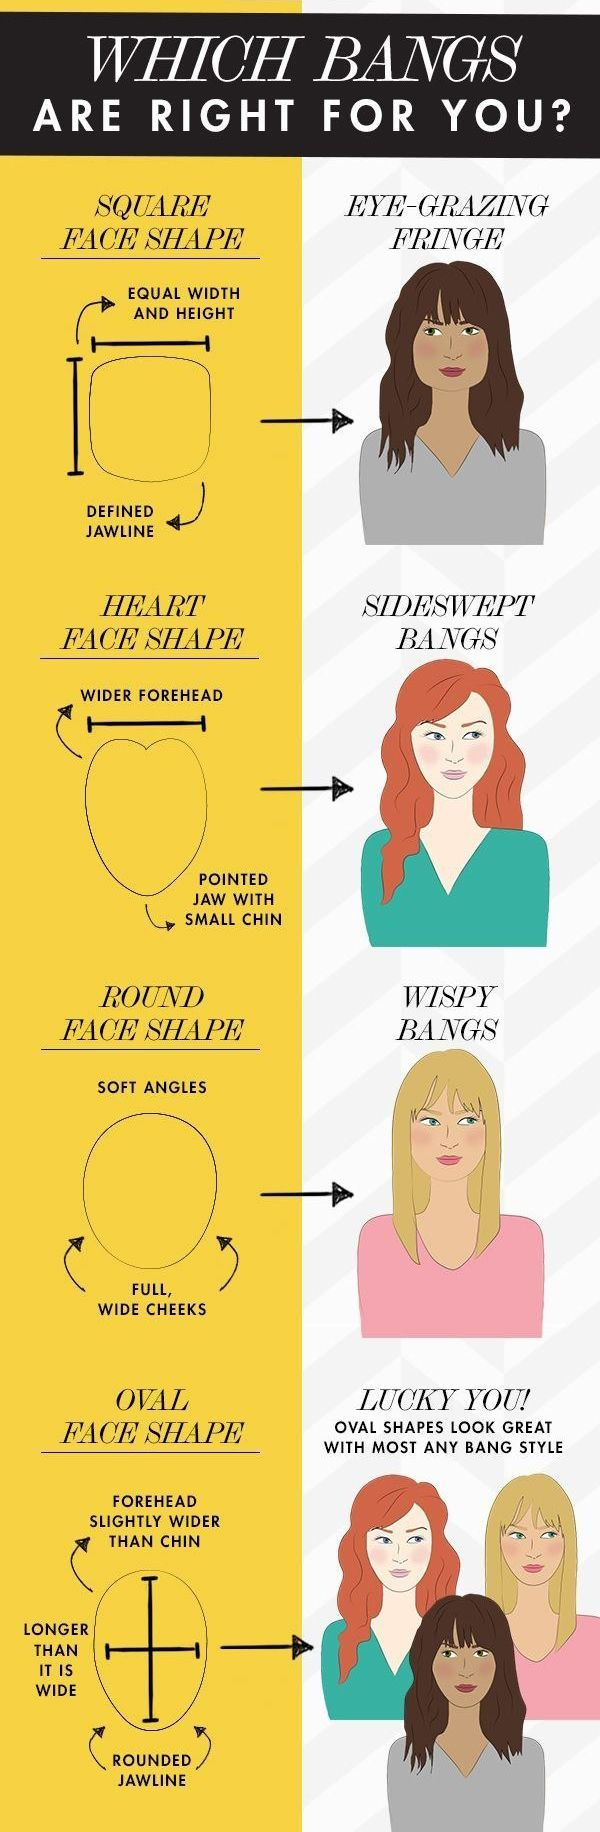 Decide whether to bang or not to bang? Which bangs are right for you? ----Ty.Hermenlisa Hair http://www.tyhermenlisahair.com/human-hair-fringe.html